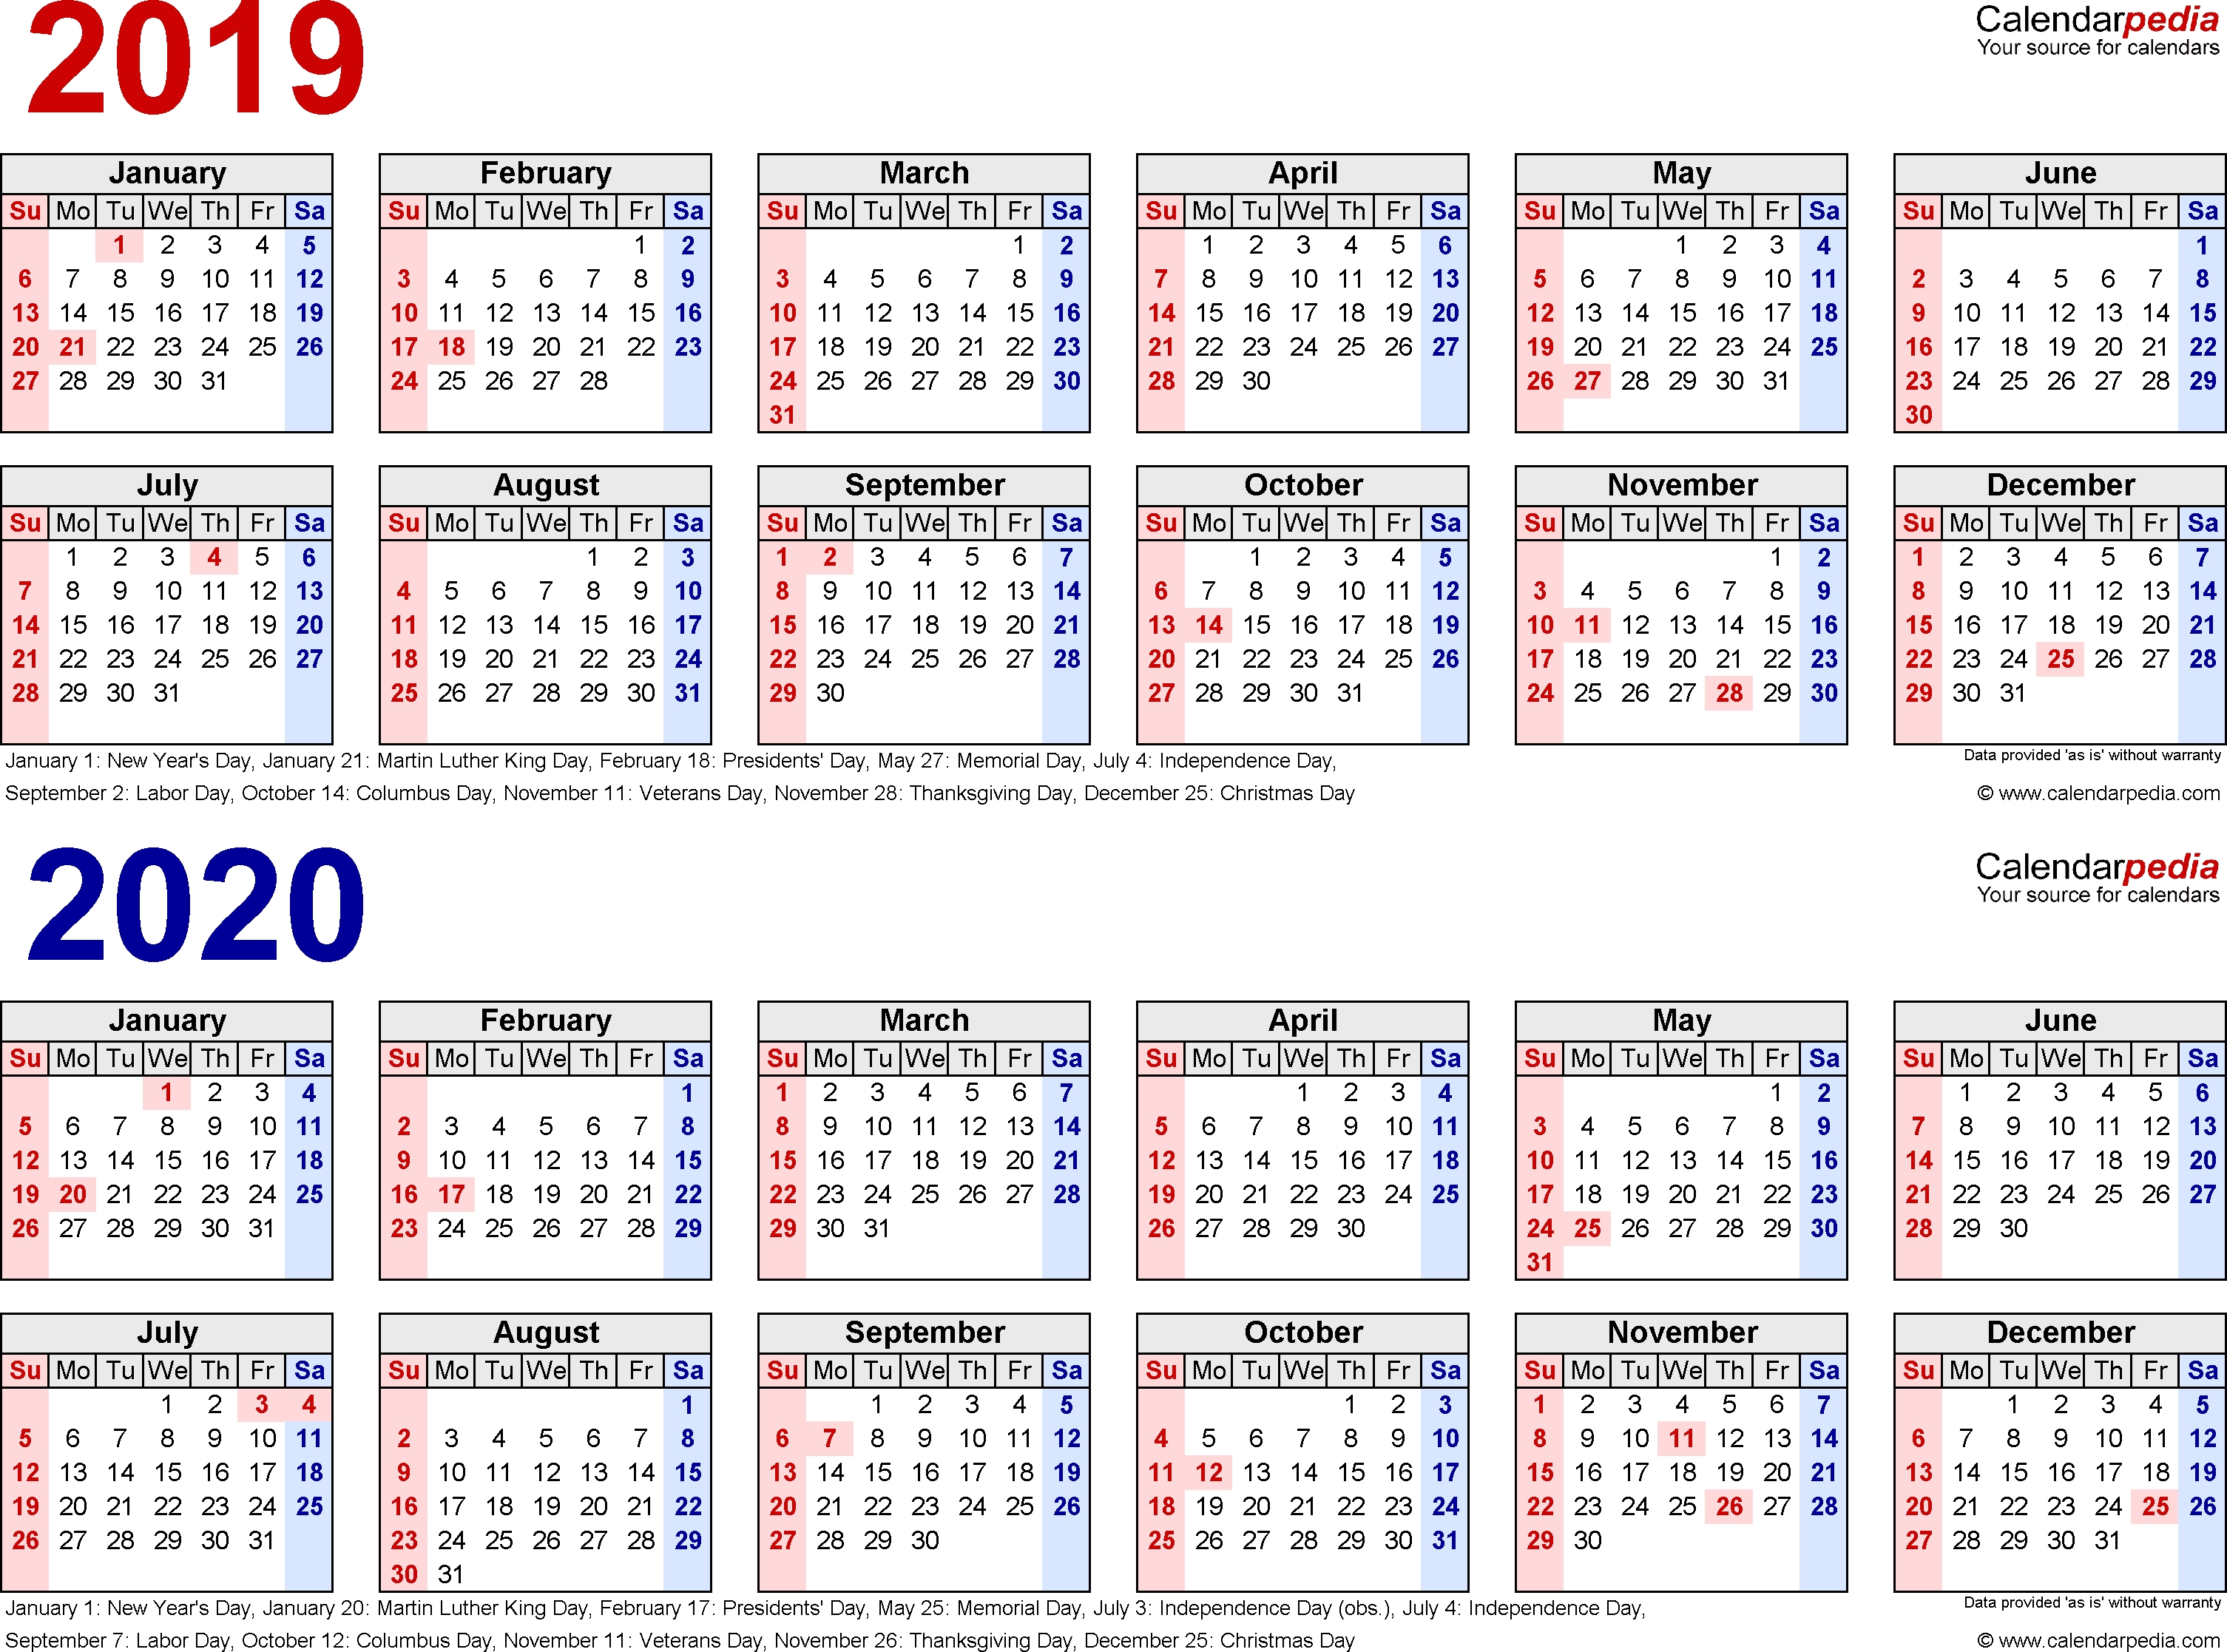 2019-2020 Calendar - Free Printable Two-Year Excel Calendars throughout Calendar 2019-2020 Excel